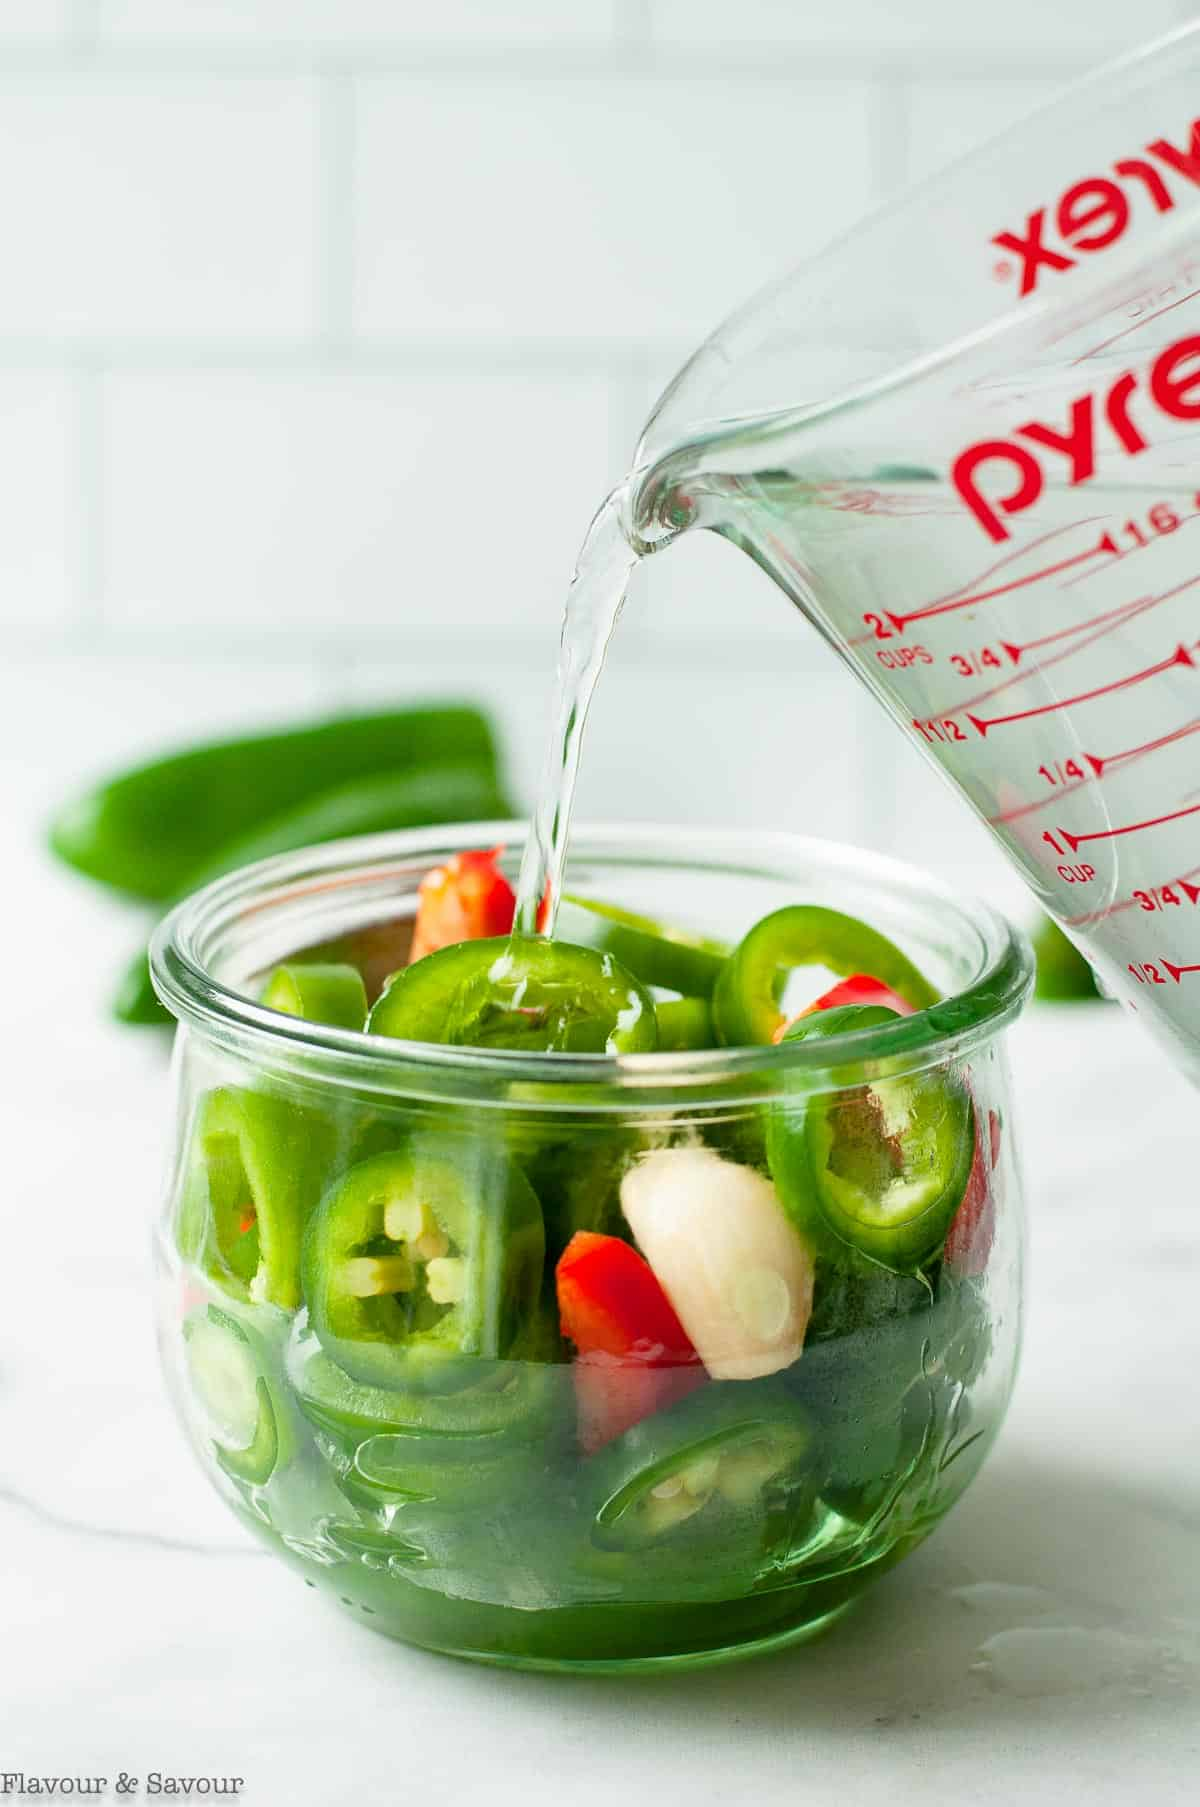 pouring brine on jalapeño pepper slices in a Weck jar